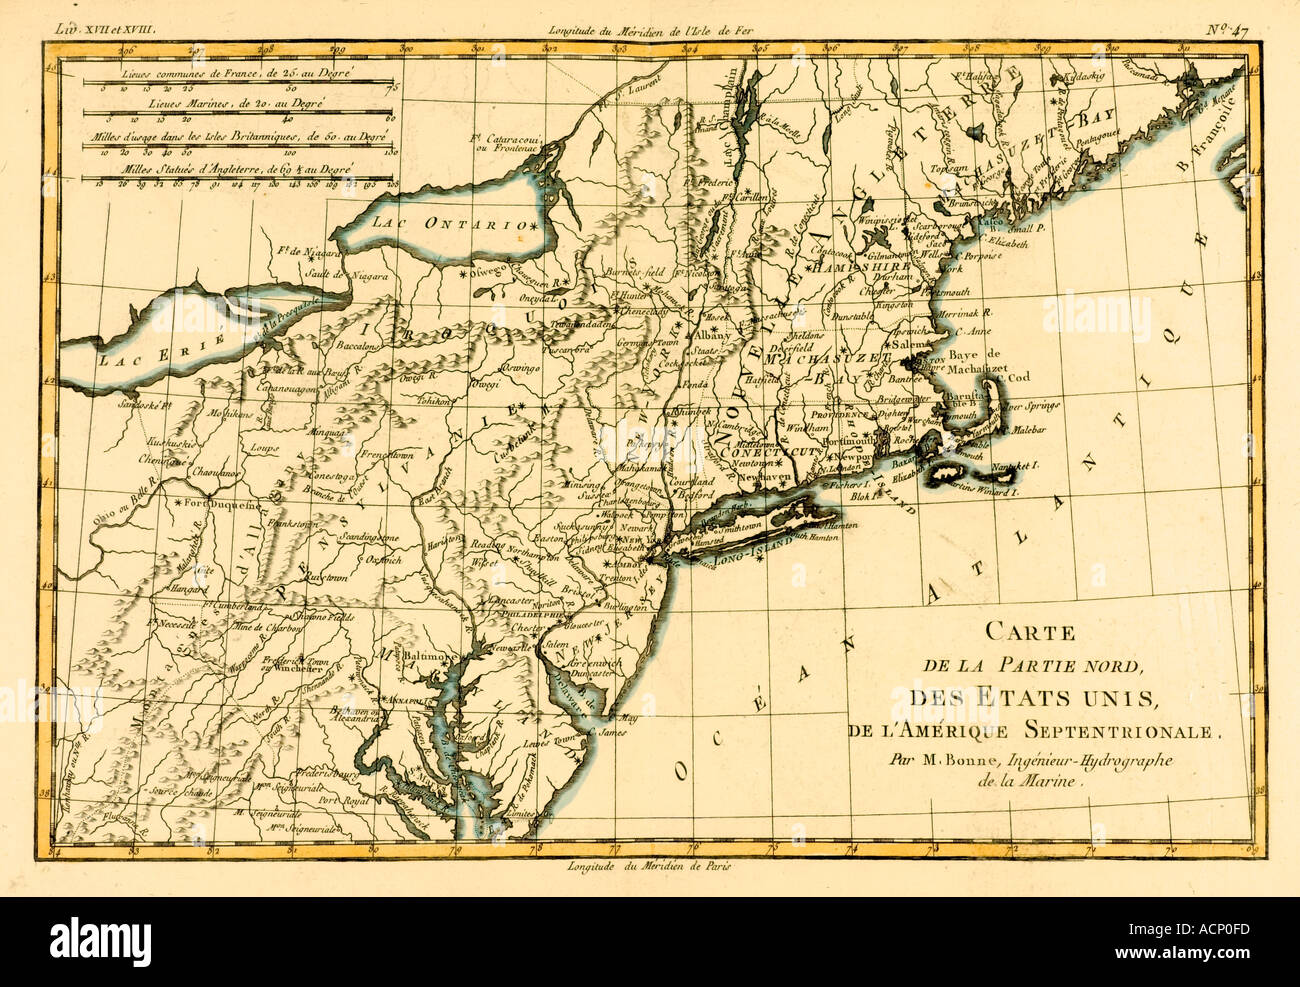 Map of the northern united states of North America circa 1760 Stock ...